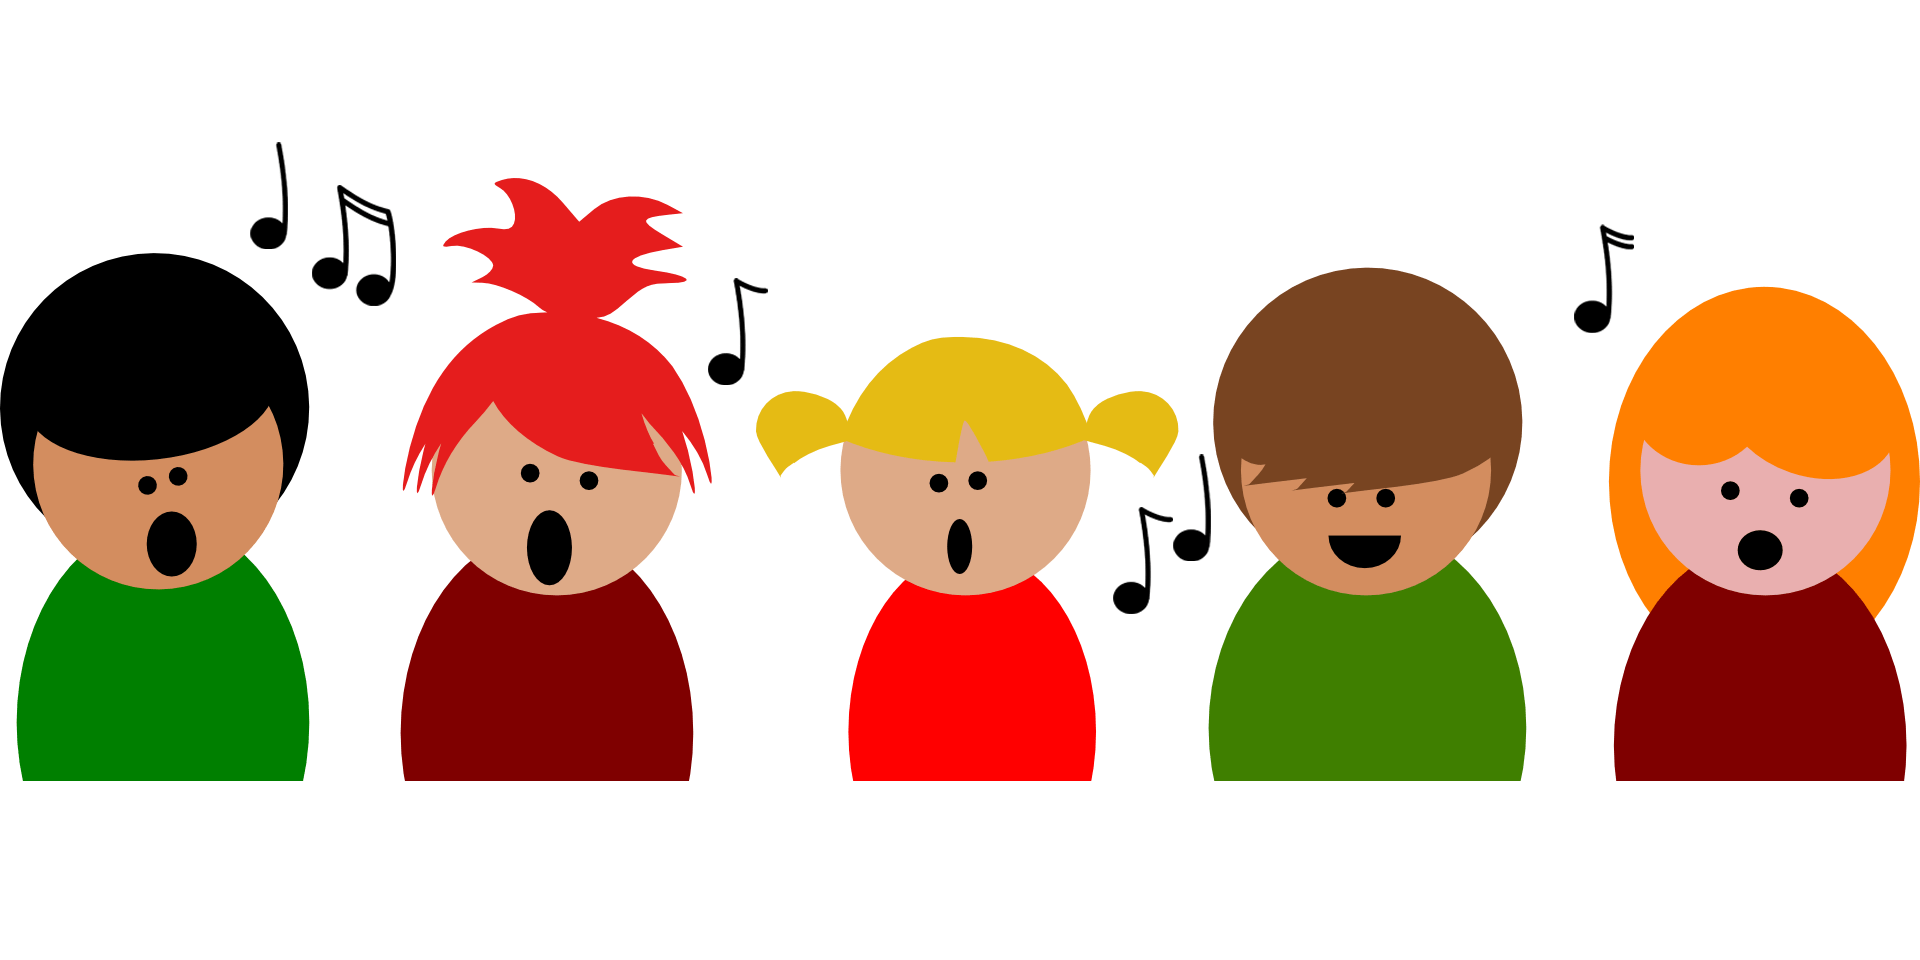 svg download Caroling in the caverns. Carolers clipart village.